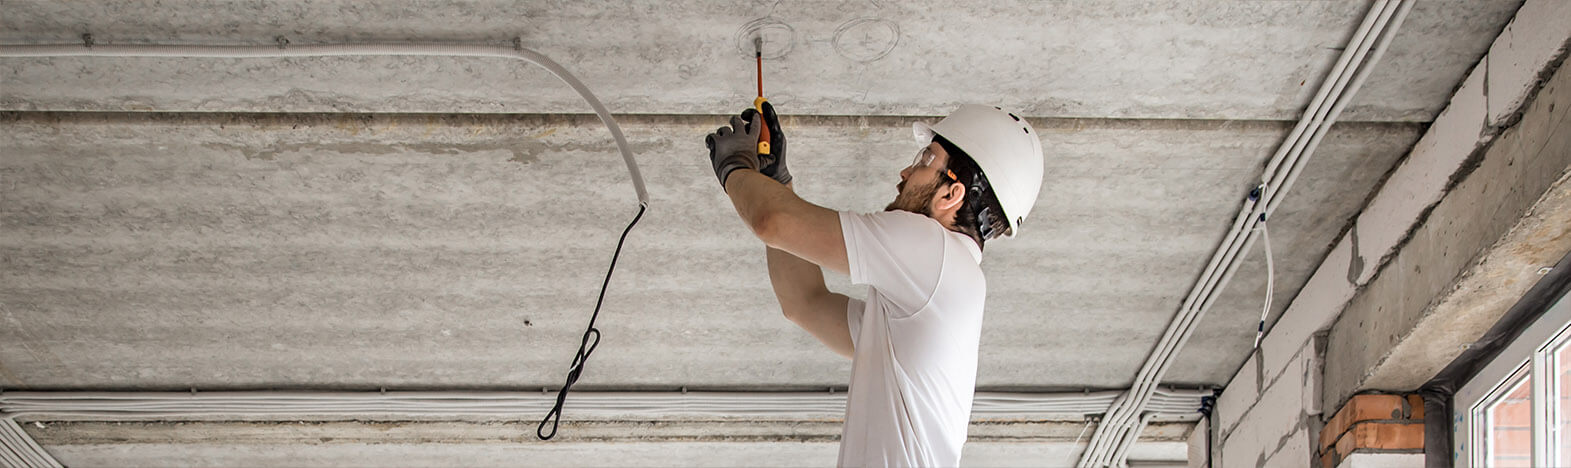 Pinellas Park Electrician, Electrical Contractor and Residential Electrician